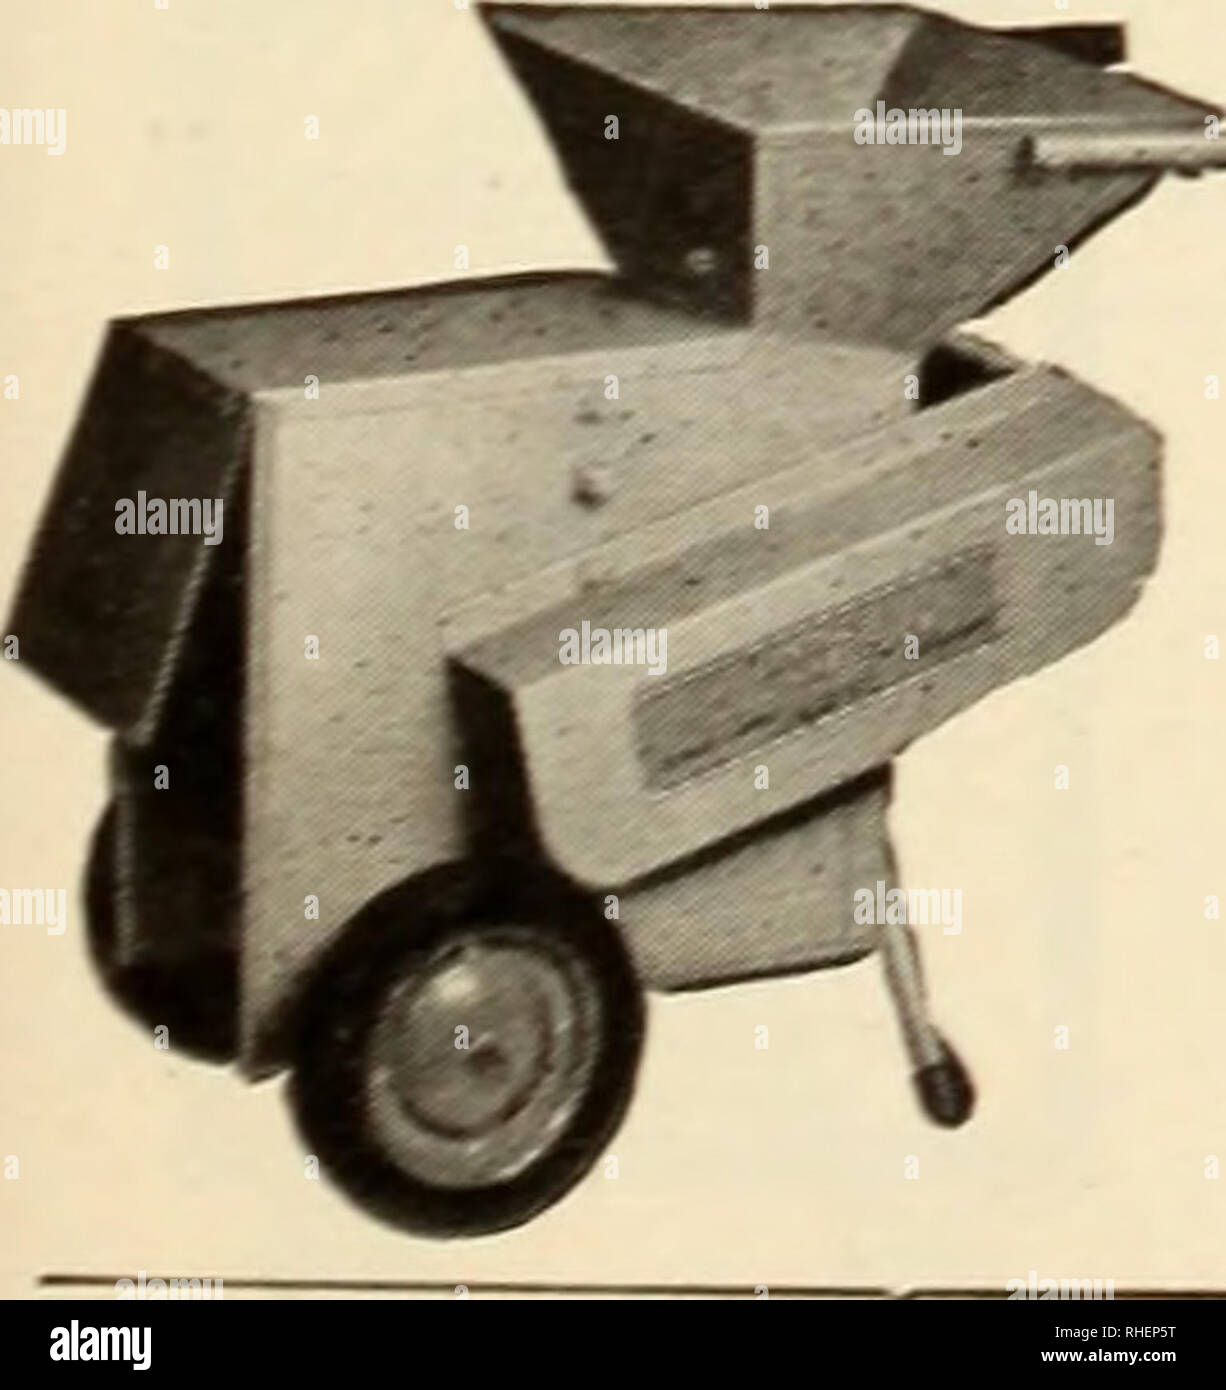 """. Bolgiano's capitol city seeds. Nurseries (Horticulture) Catalogs; Bulbs (Plants) Catalogs; Vegetables Catalogs; Garden tools Catalogs; Seeds Catalogs. fill Your fence Heeds How Hog and Cattle Steel Wire Fencing No. bars Height No. 72â¬. Hog Fence in. No. 832. Hog Fence 32 in. 8. No. 1047. Cattle Fence 47 in. 10 20-rod roll ..$23 f>5 . 27 40 ...26 60 ttTHKt 5 ...., 21 BARS 58 fflOlES HIGH 5 5 19 BARS 48 INCHES men -: 4B 4 16 3 A.R 5 35 n:-:: .- 4 3^ M 3 : i  i t â """" r """" *2 .' t ri i t r? L - t - *-? i E â E TJ i i 1 -â â -!â1â^âtâ â ,- i » - â - »- h -^ . P . ES2 rr, n SaLii - Stock Image"""